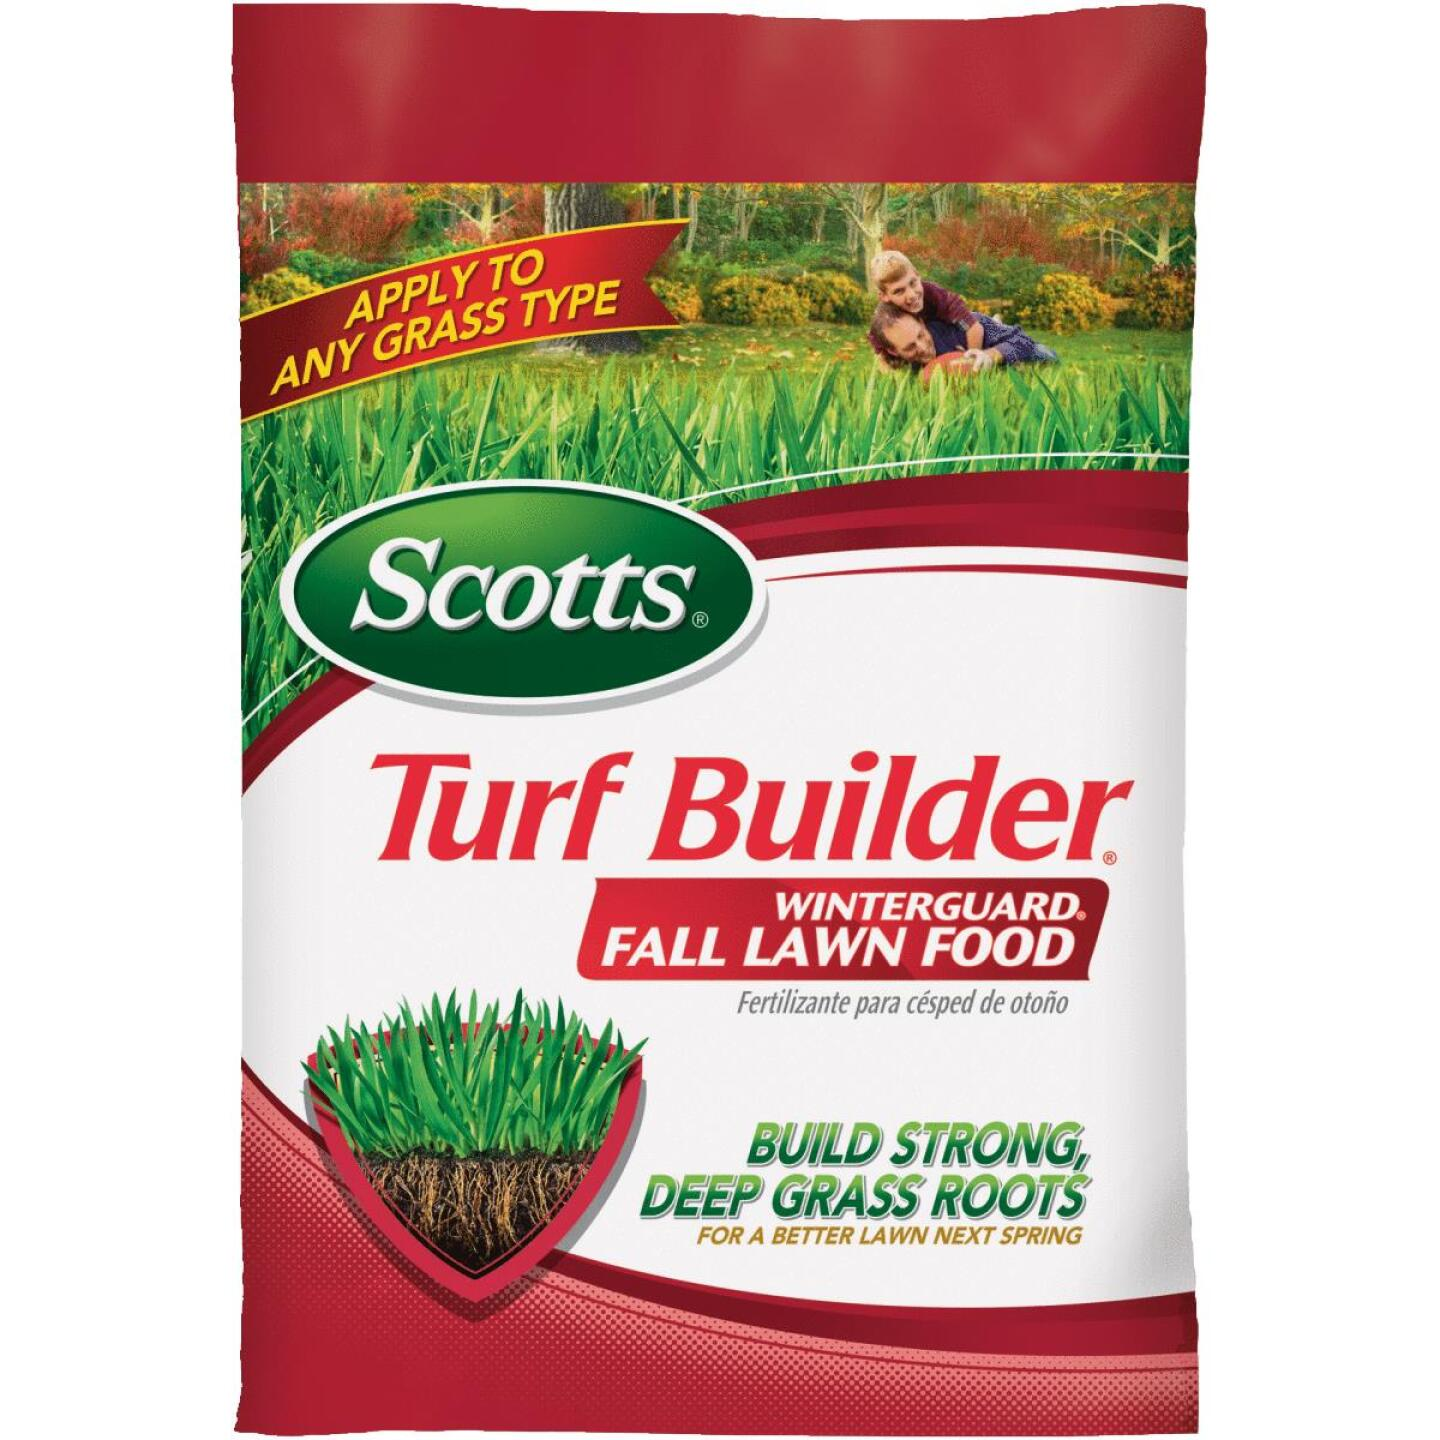 Scotts Turf Builder WinterGuard 37.5 Lb. 15,000 Sq. Ft. 32-0-10 Winterizer Fall Fertilizer Image 1